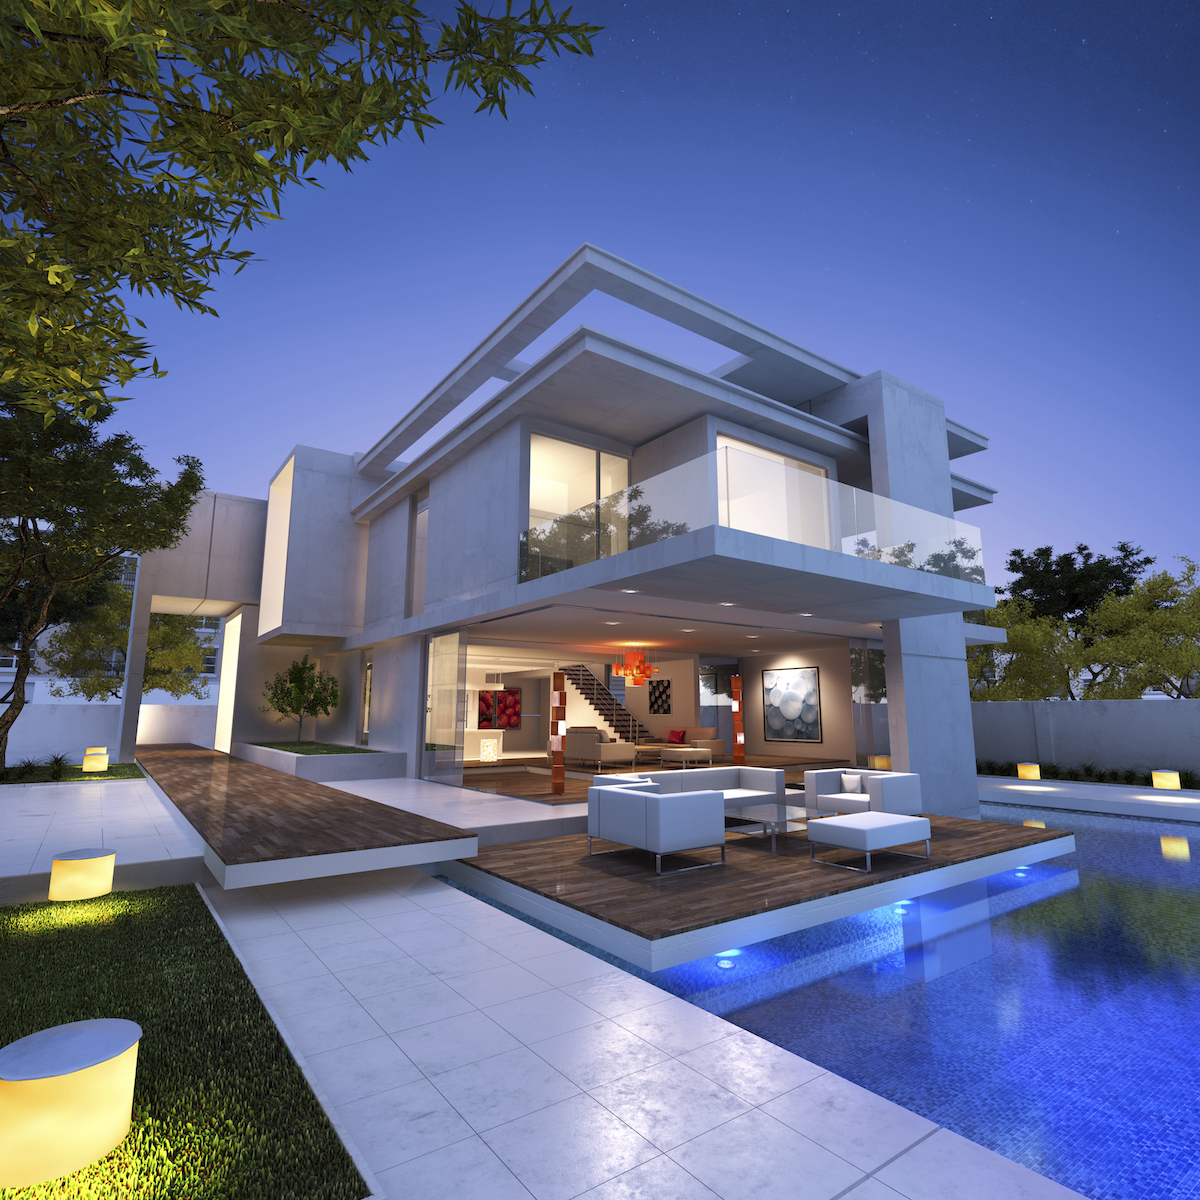 Exterior view of a contemporary luxury real estate property with pool at dusk